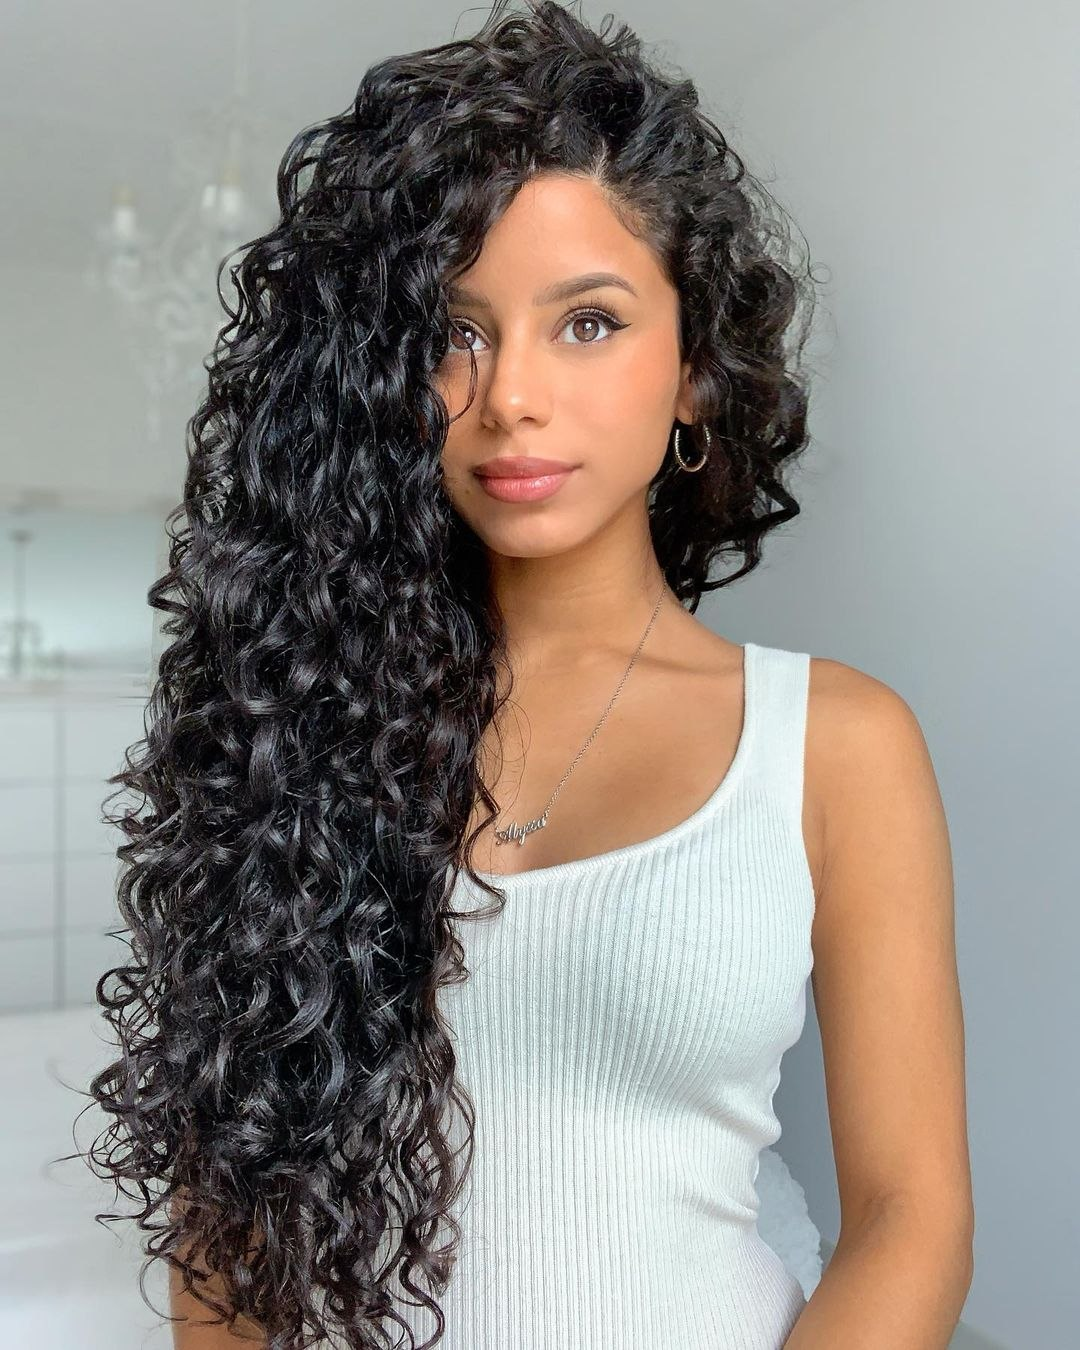 Long Hairstyle Curly Best Of 28 Cute Long Curly Hairstyles for 2021 - Easy Curly Hair Ideas